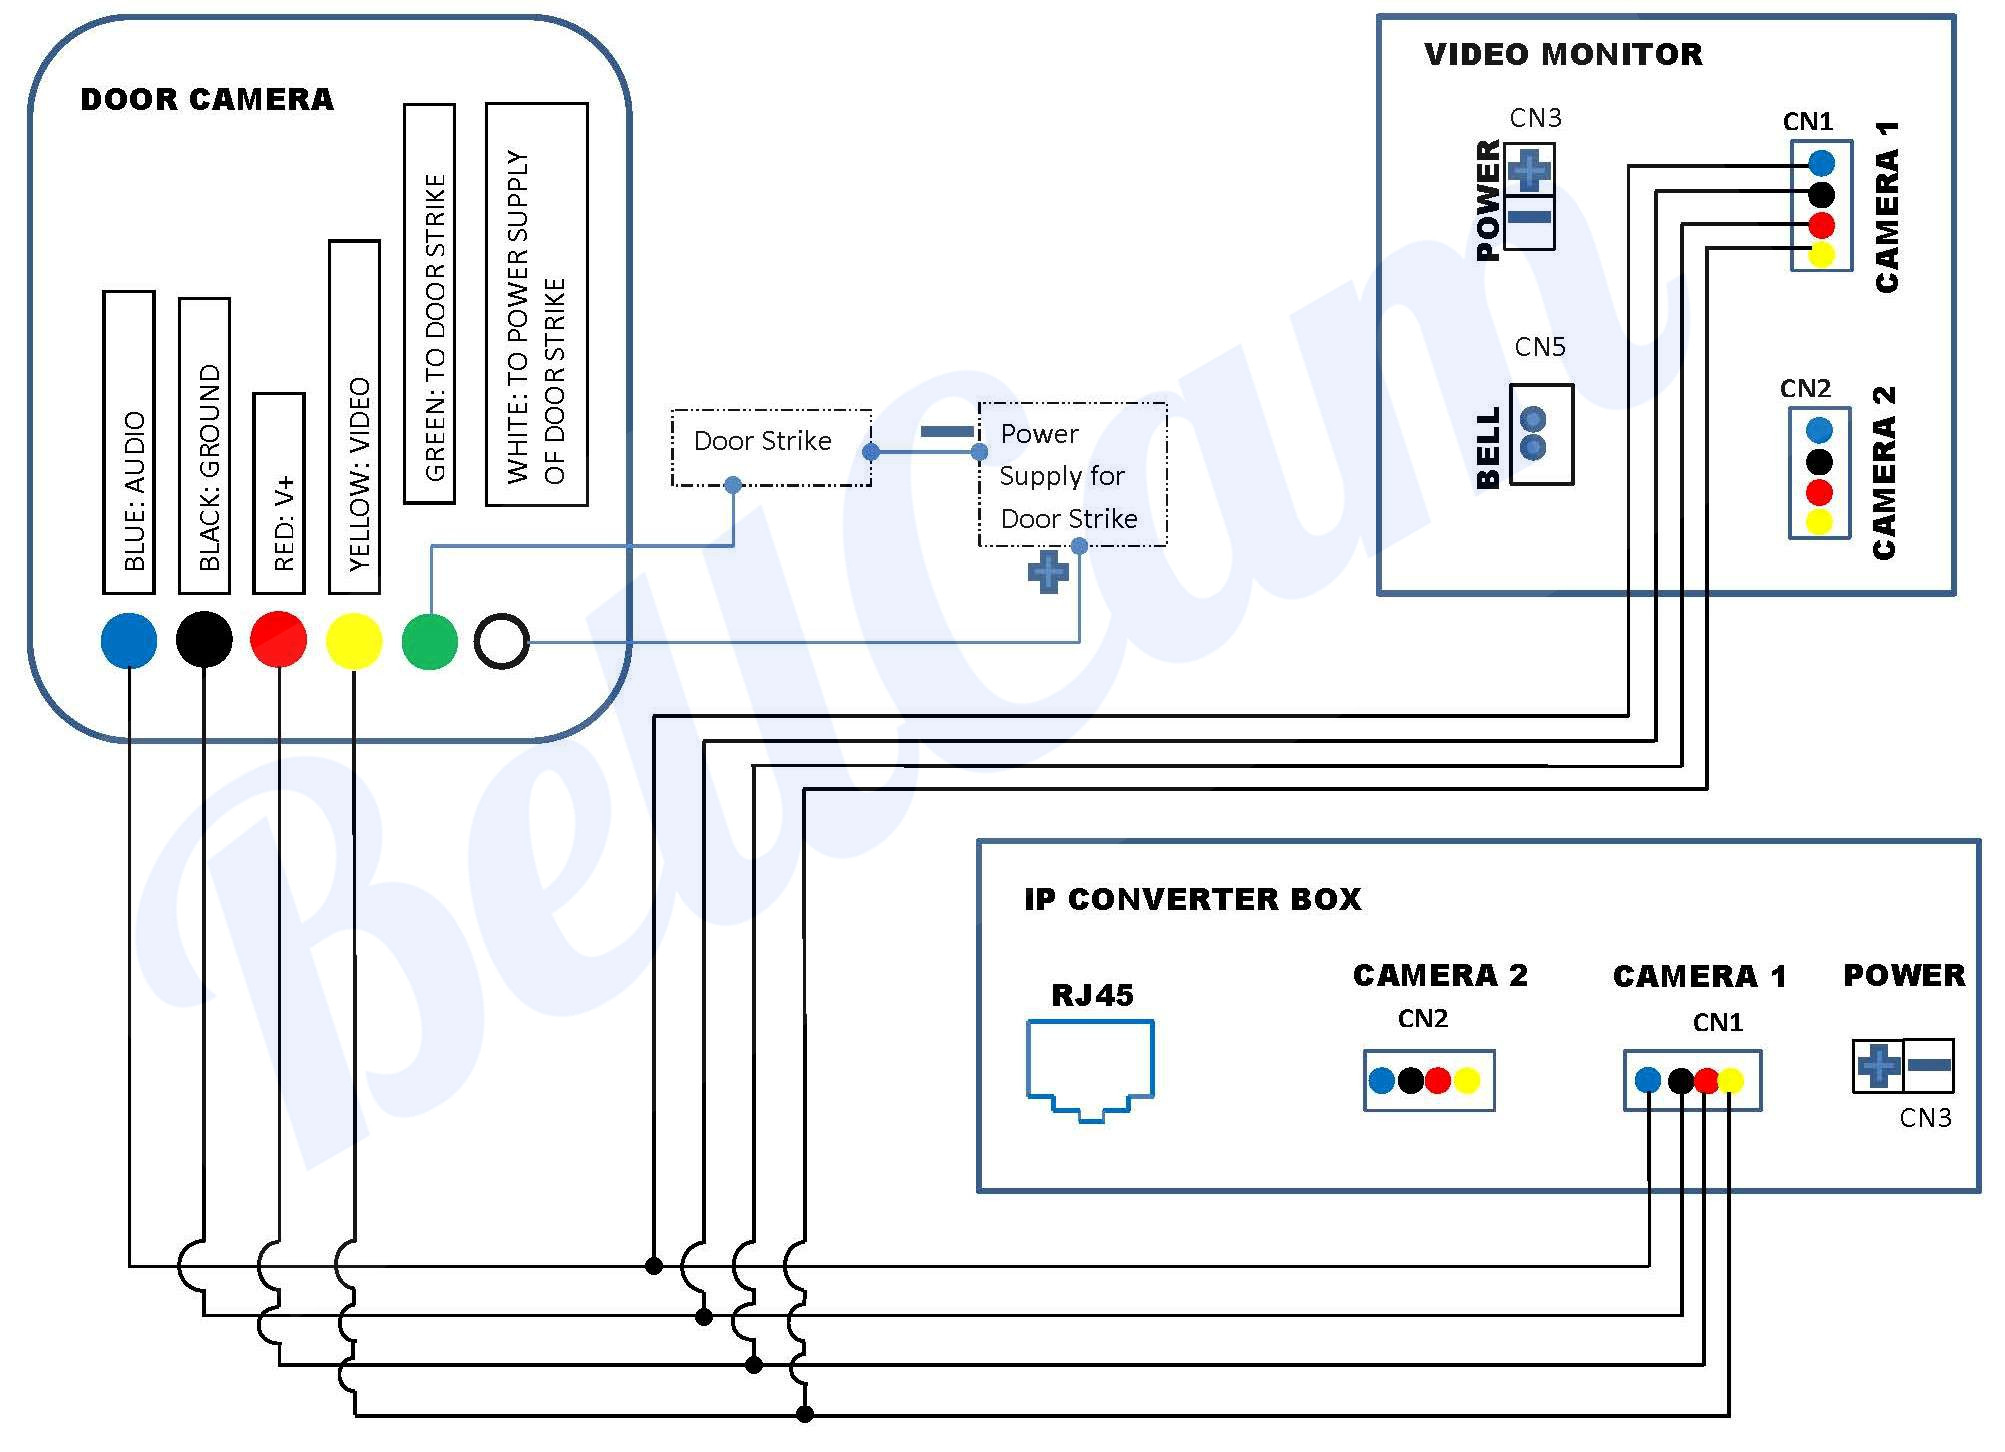 Item 47546 Wiring Diagram - All Wiring Diagram - Bunker Hill Security Camera Wiring Diagram